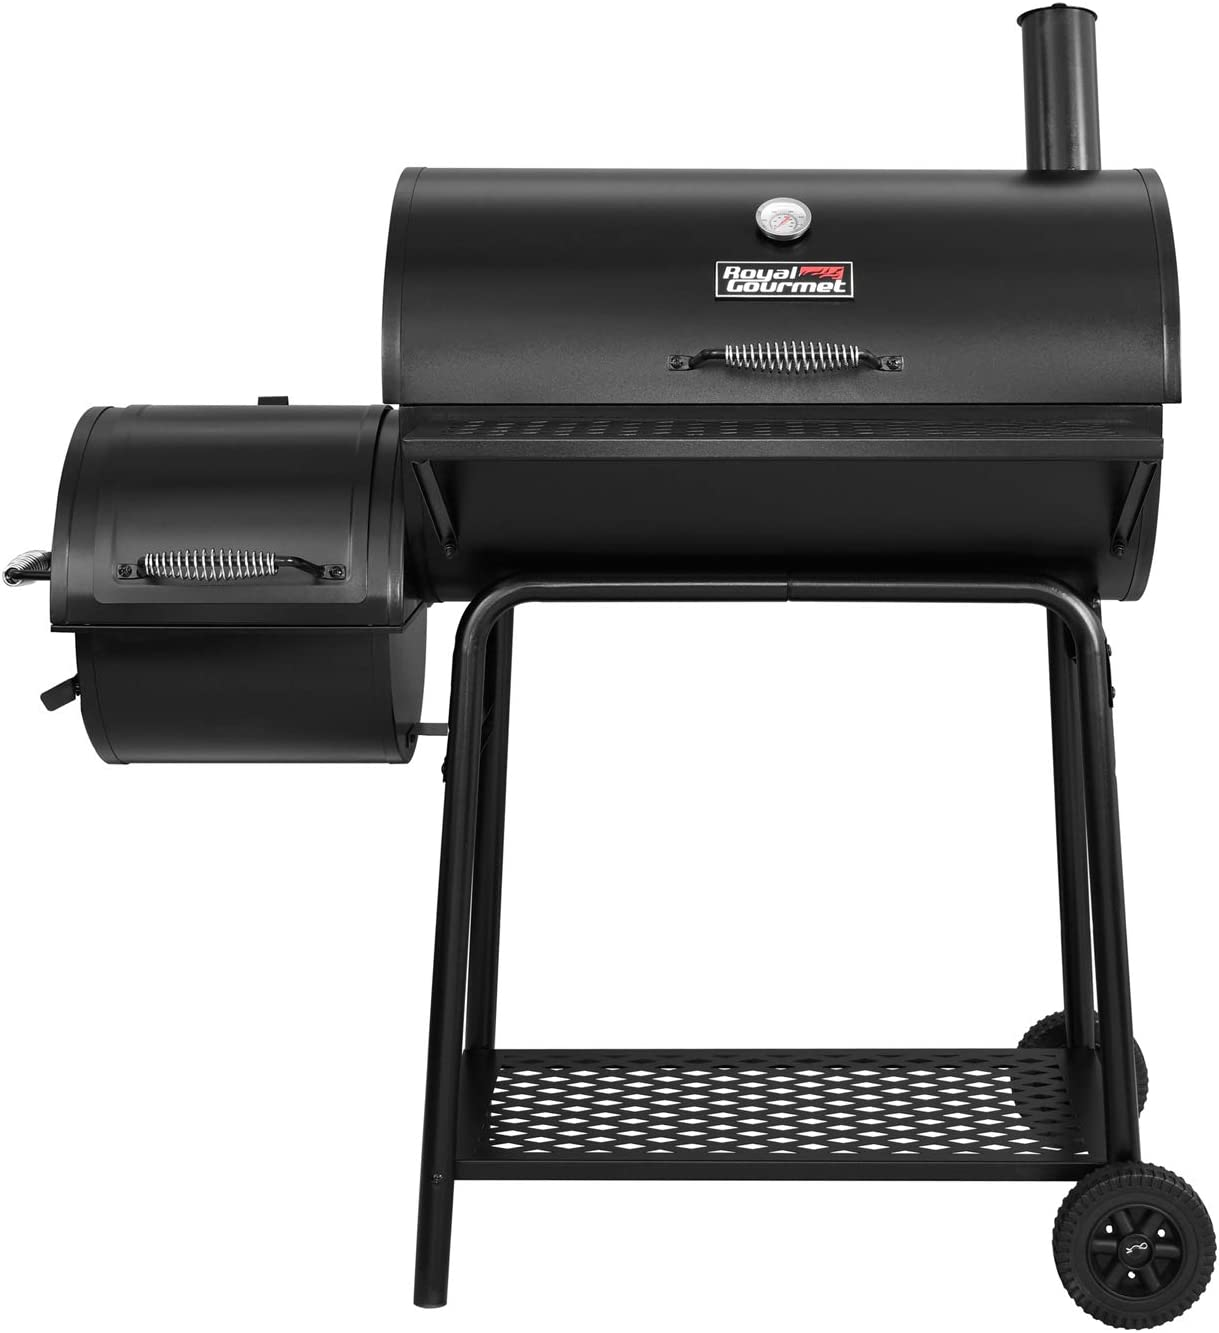 Royal Gourmet CC1830F Charcoal Grill with Offset Smoker review